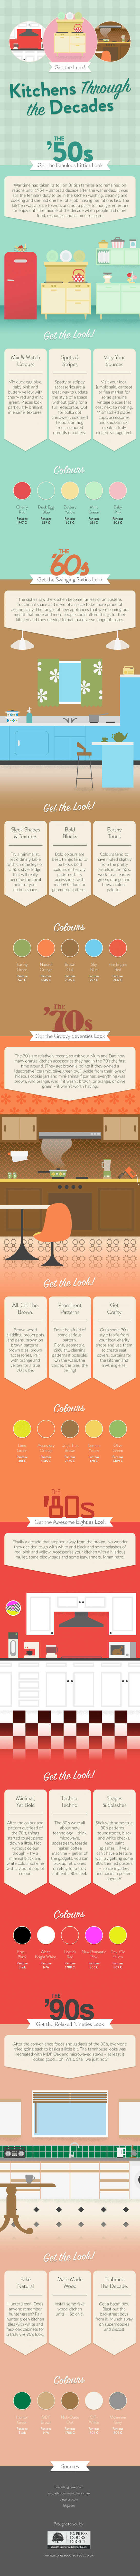 Rewinding Décor Themes: Kitchens Through the Decades - Infographic